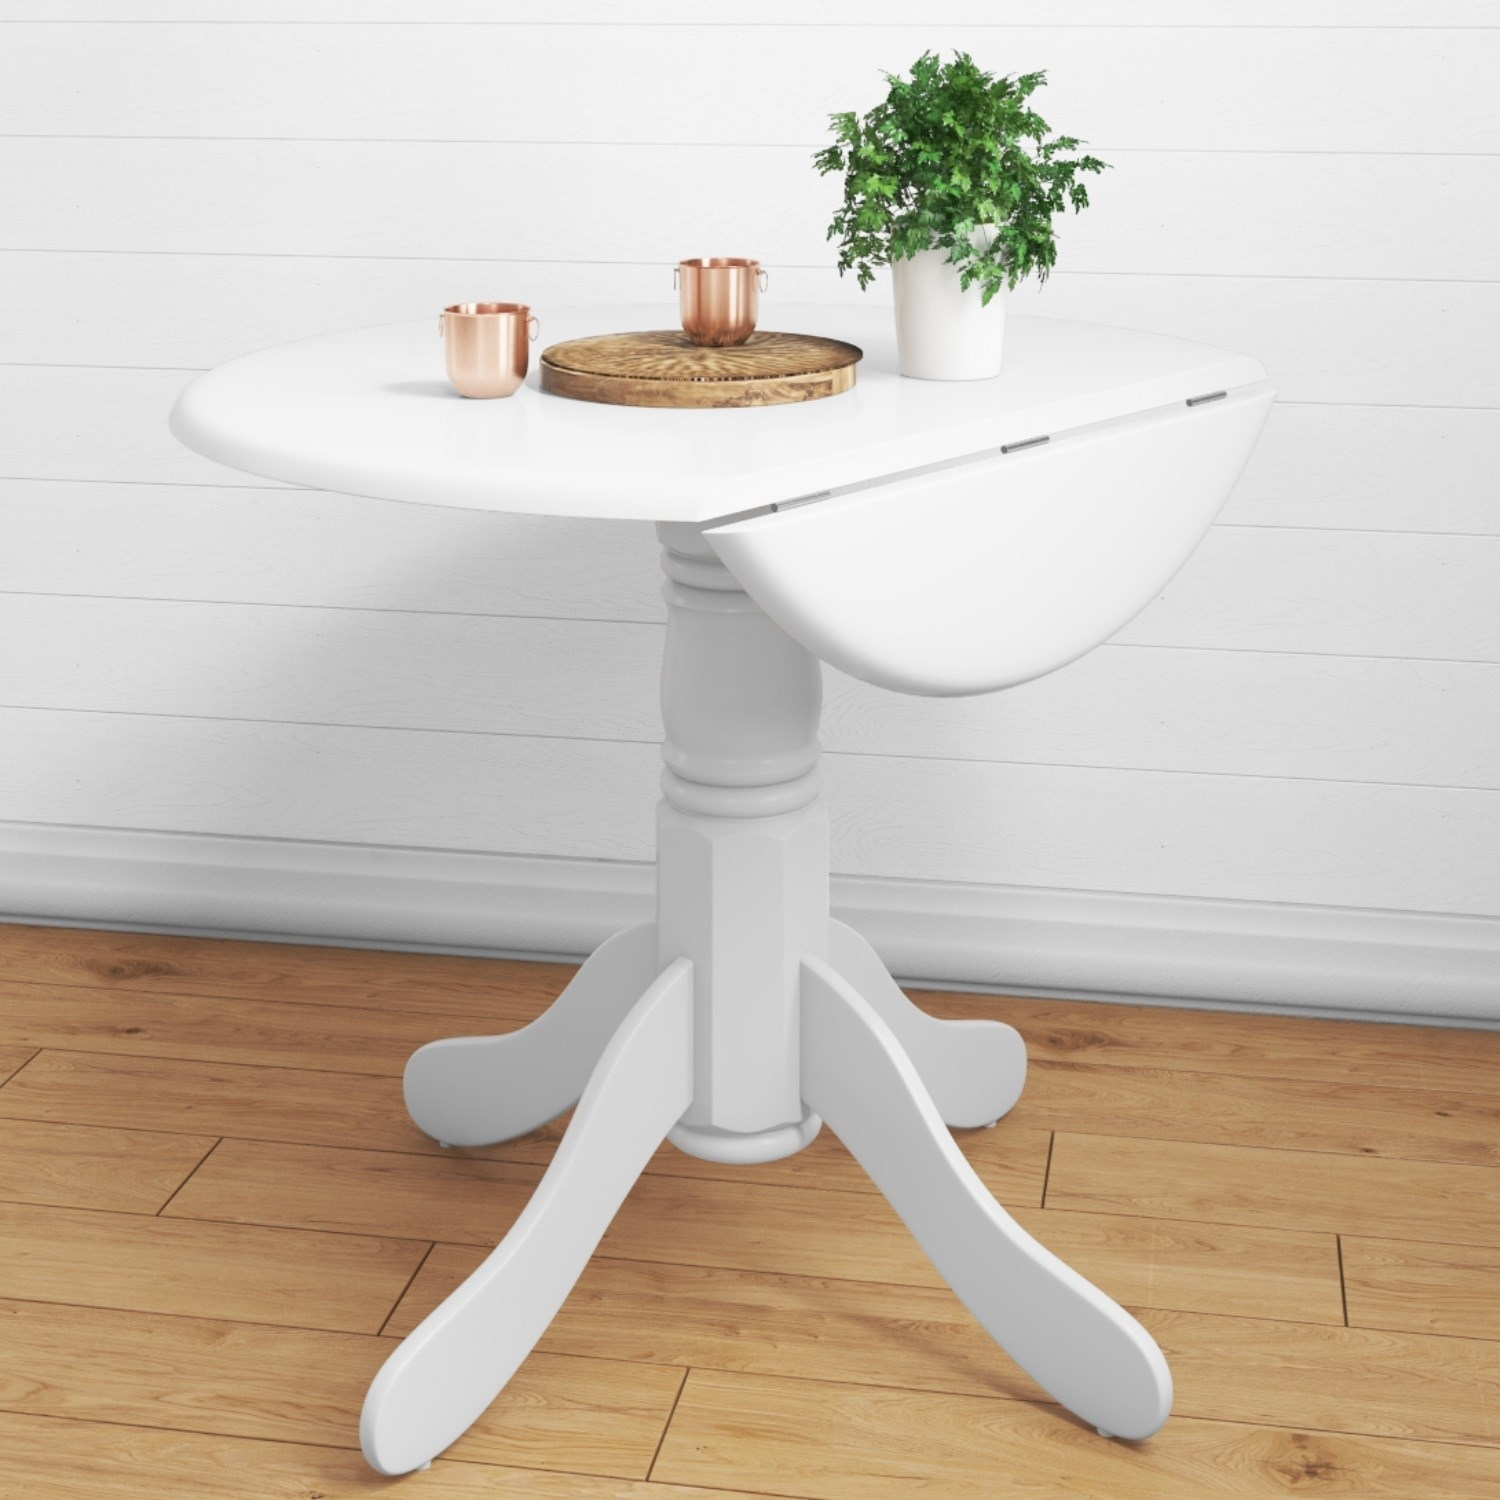 Drop Leaf Table Dining: Drop Leaf 4 Seater Round Dining Table In White